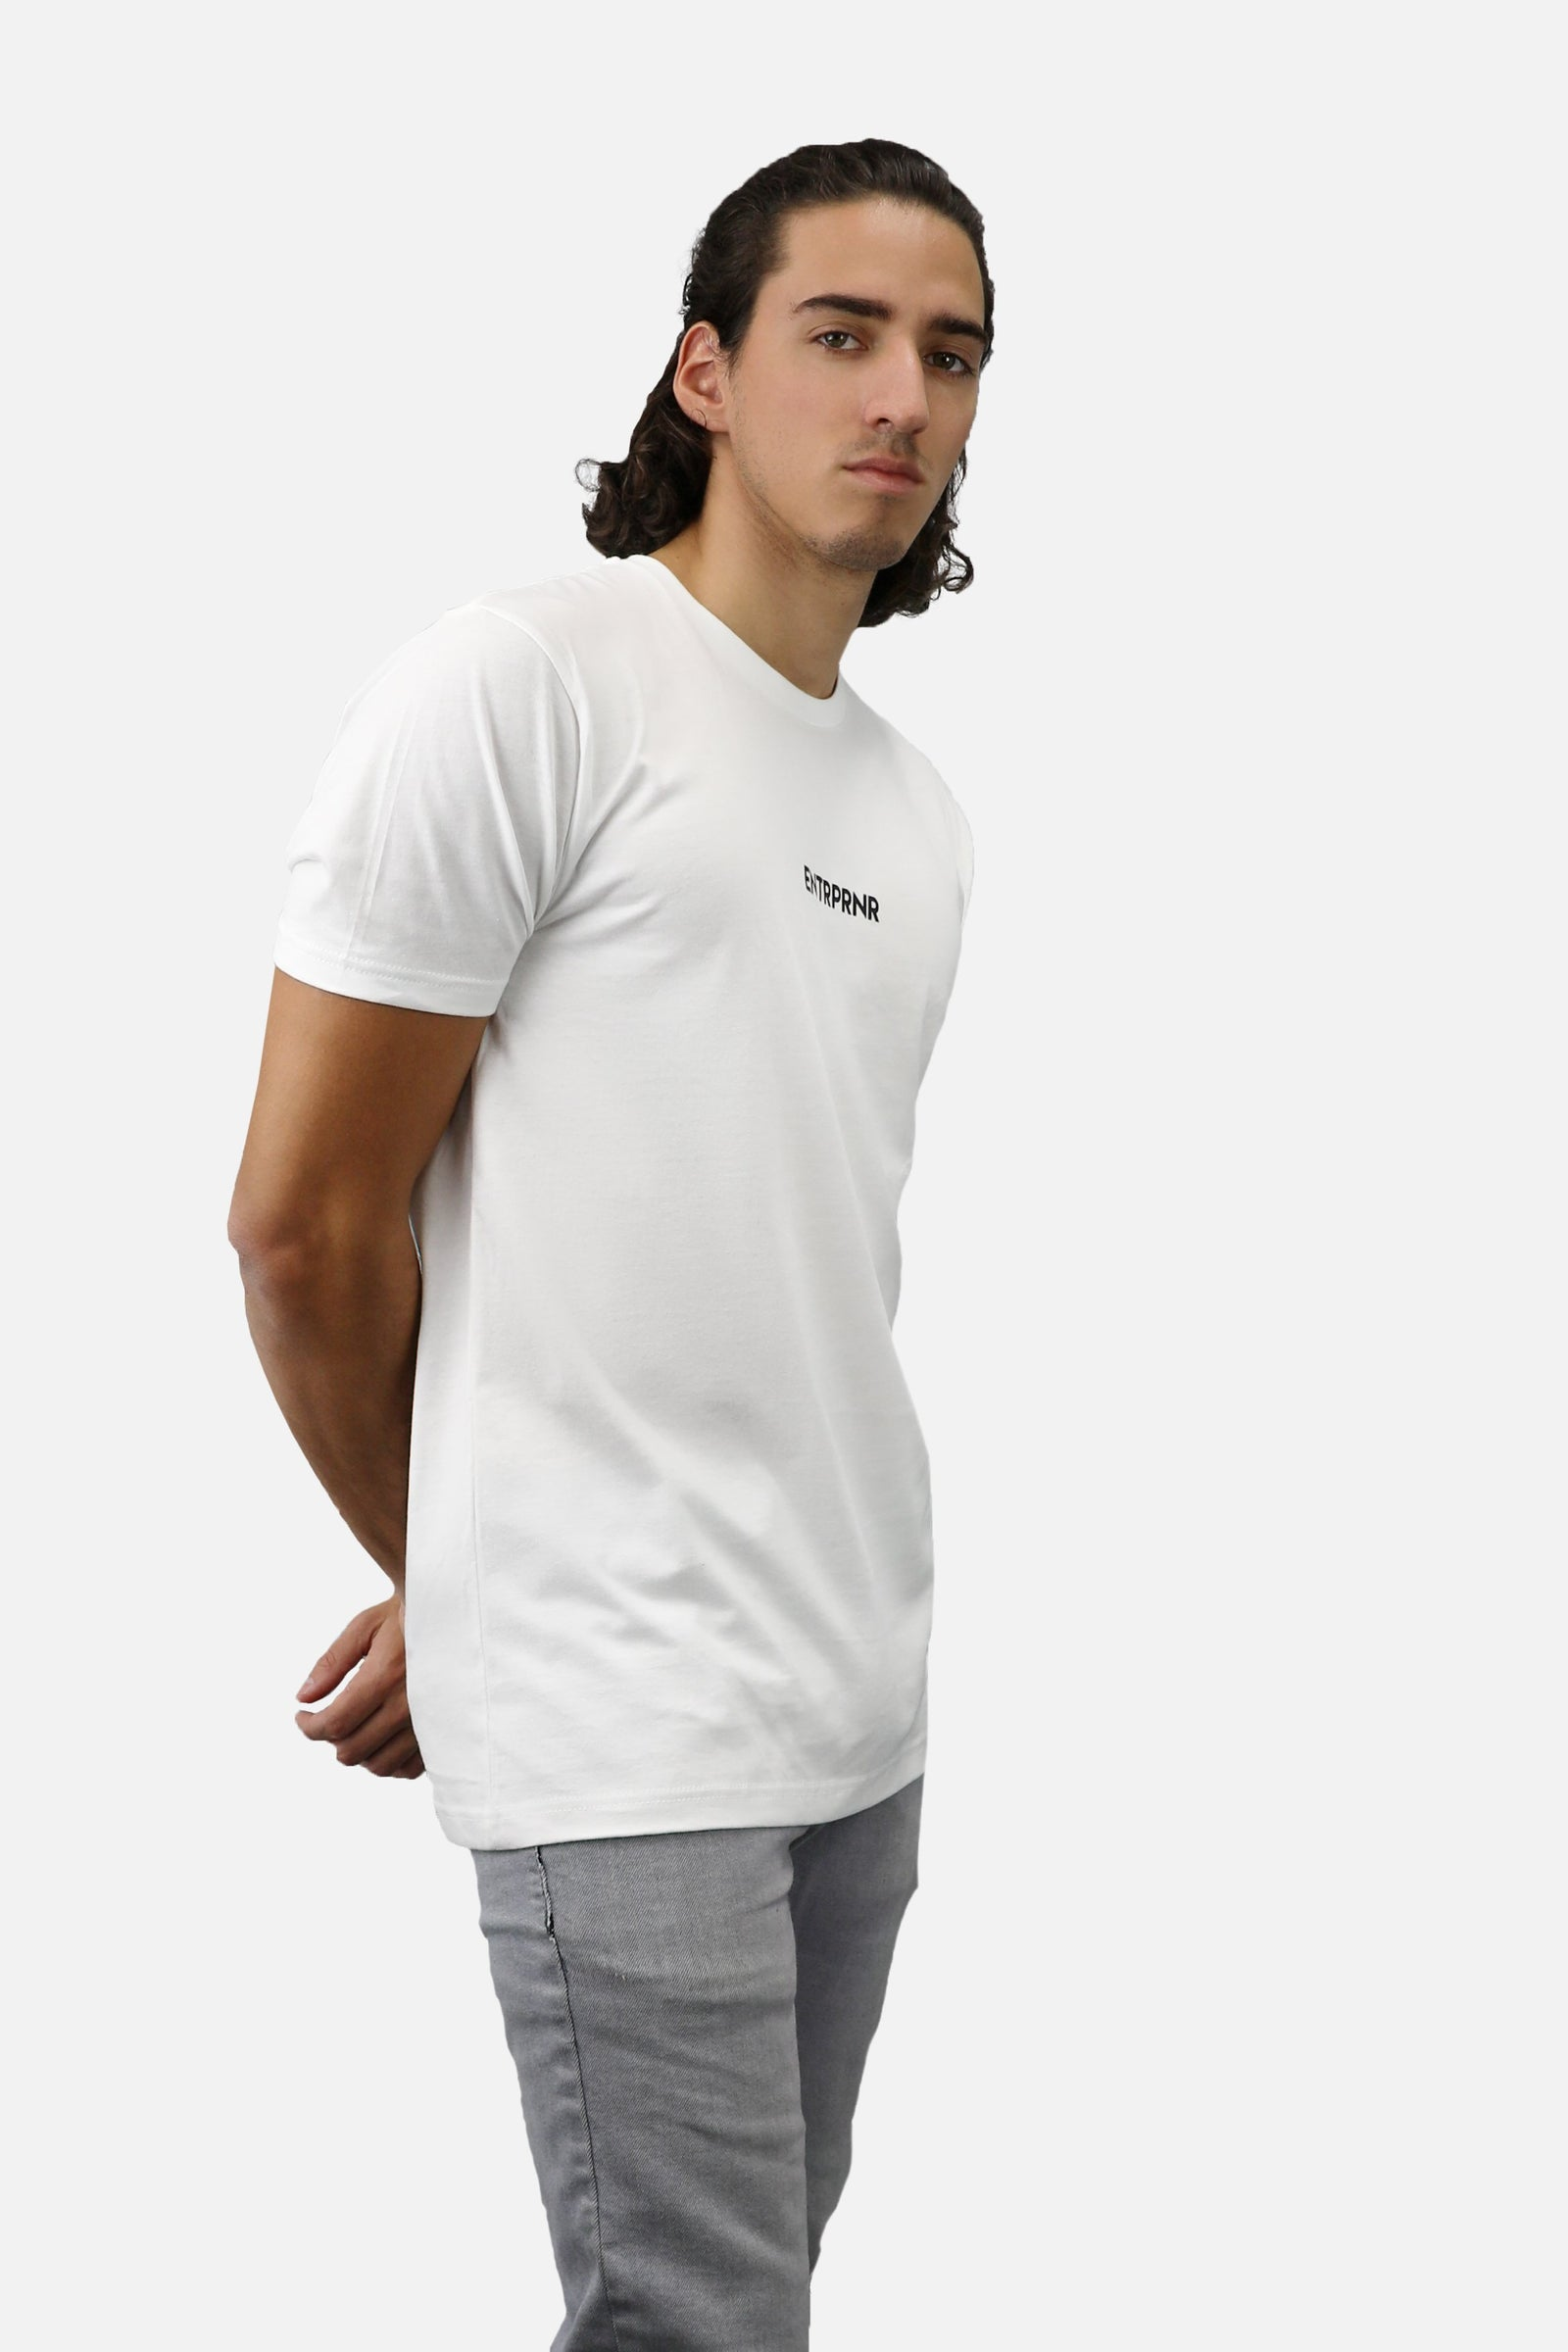 Tiny Logo ENTRPRNR Tee – White - ENTRPRNR® | The Entrepreneur's Clothing Brand. | Stagnancy is the Enemy. Action is King.